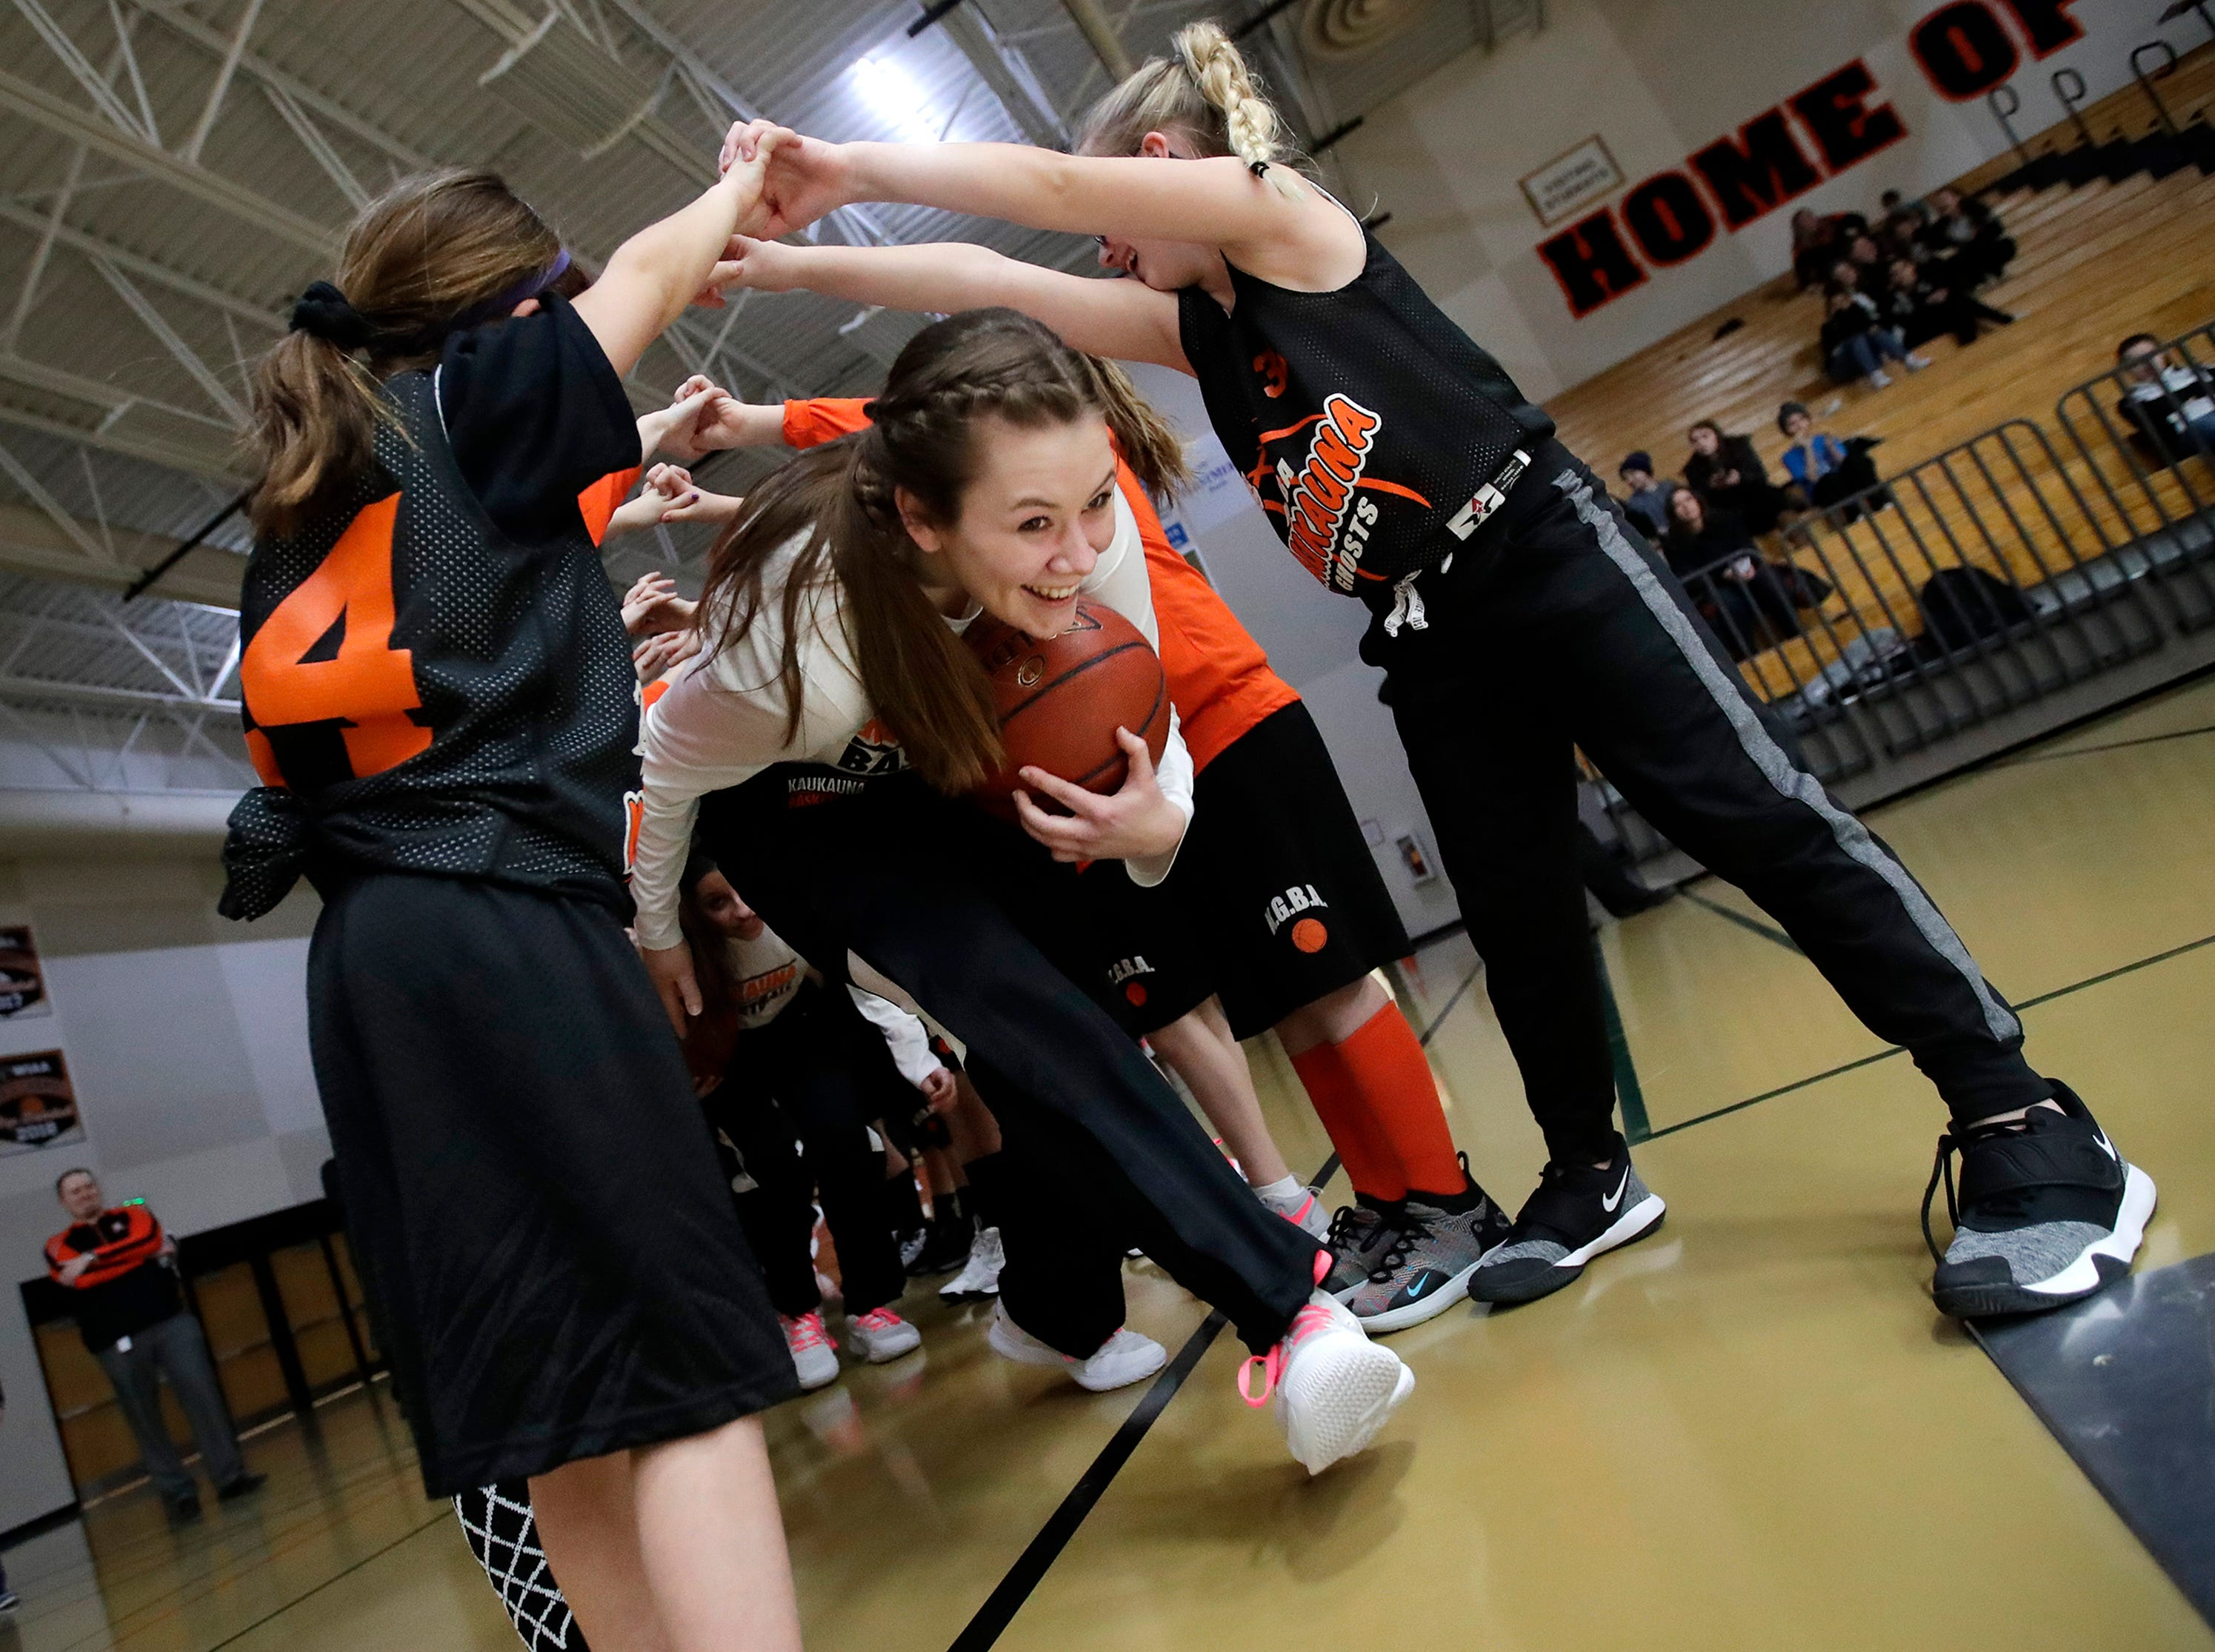 Kaukauna High School's Gabby Djupstrom, a senior on the team, runs through the arms of the third-grade Kaukauna basketball team as she takes the court Tuesday, Feb. 5, 2019, in Kaukauna, Wis.